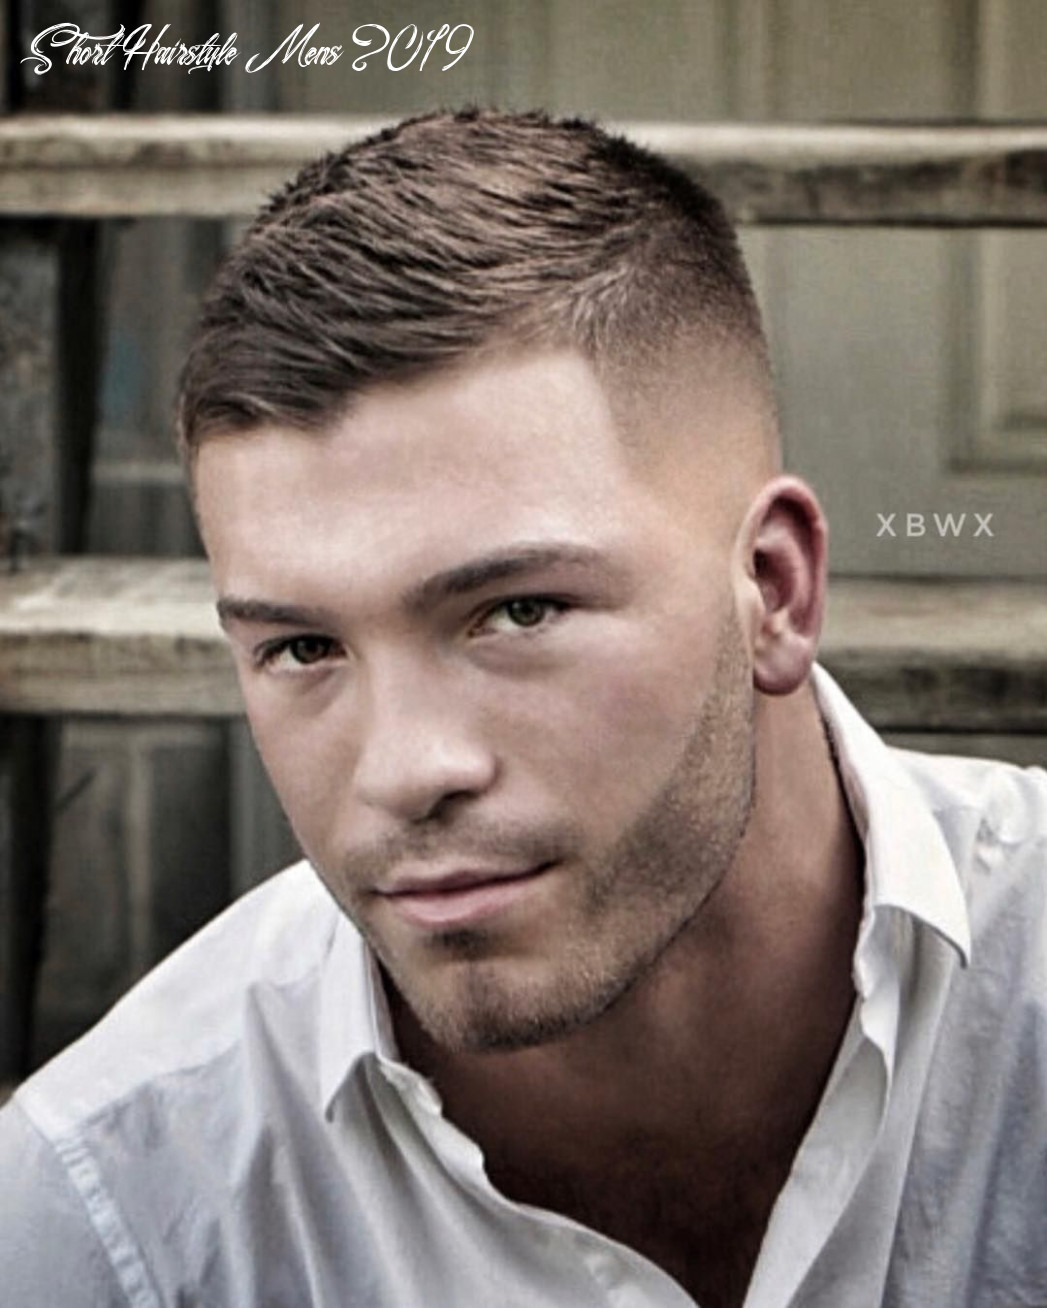 10 mens short haircut styles 10, great style! short hairstyle mens 2019